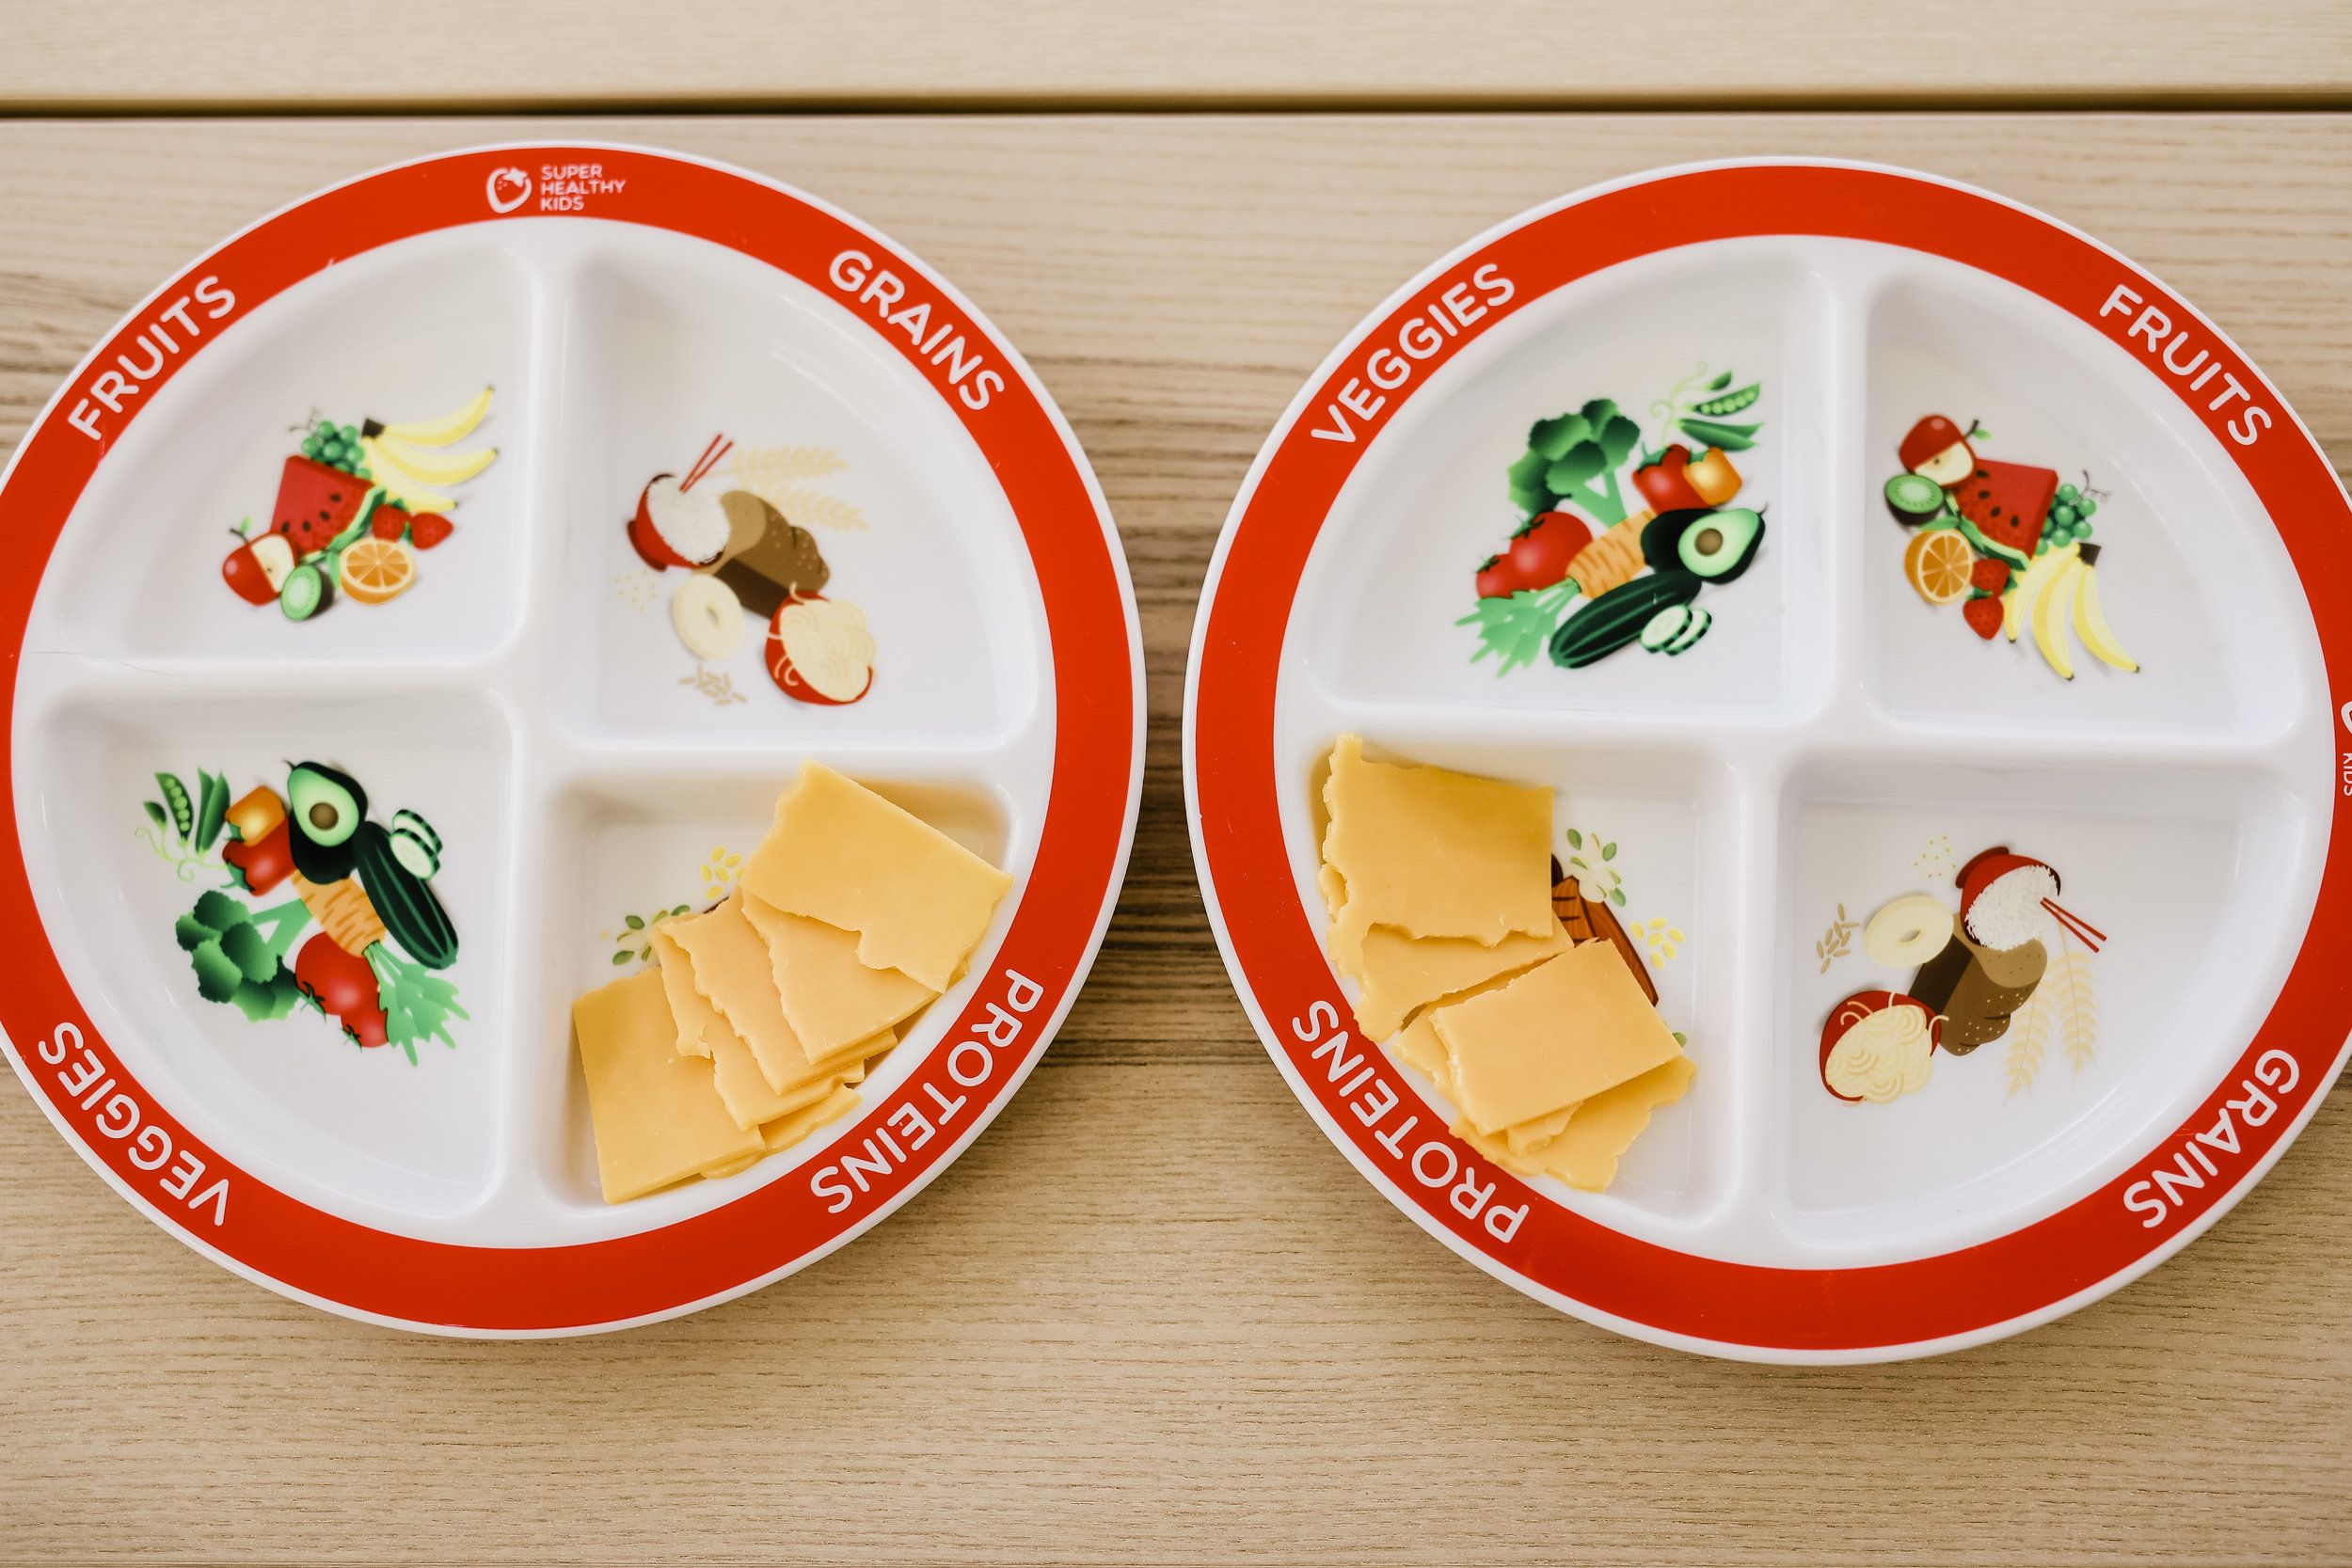 We love these toddler plates